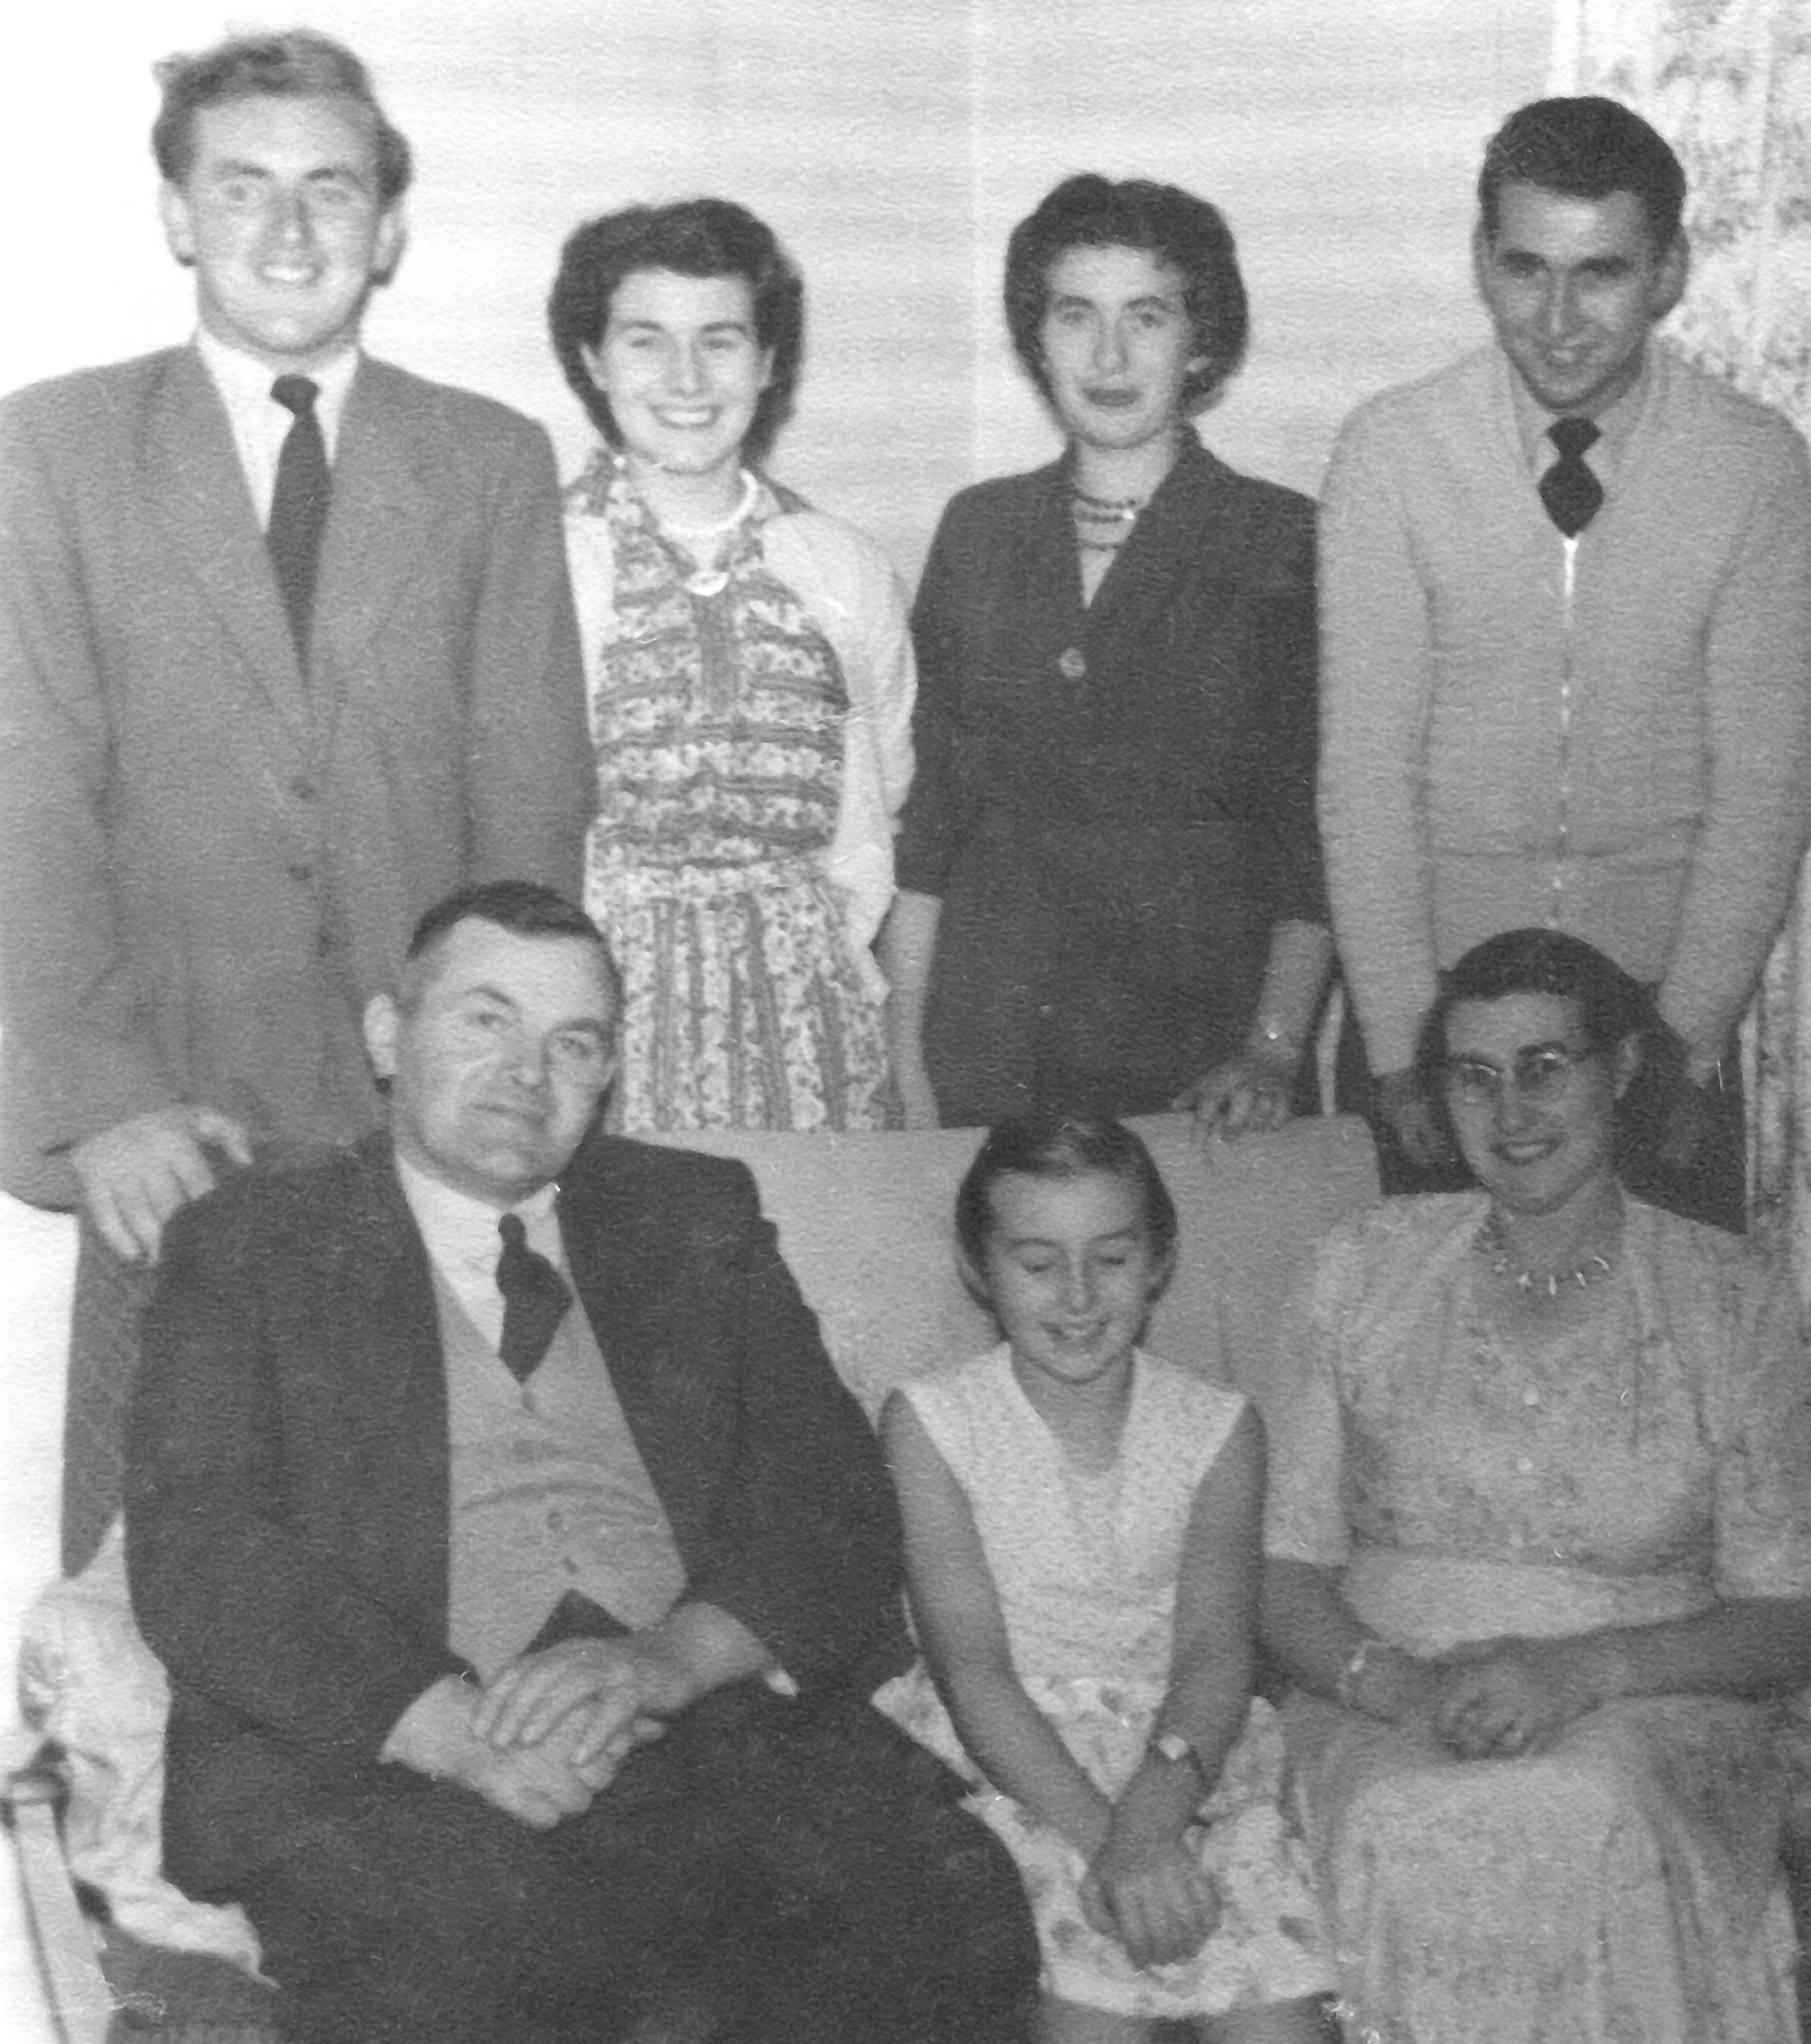 Stephens Family Post Office Row 1959